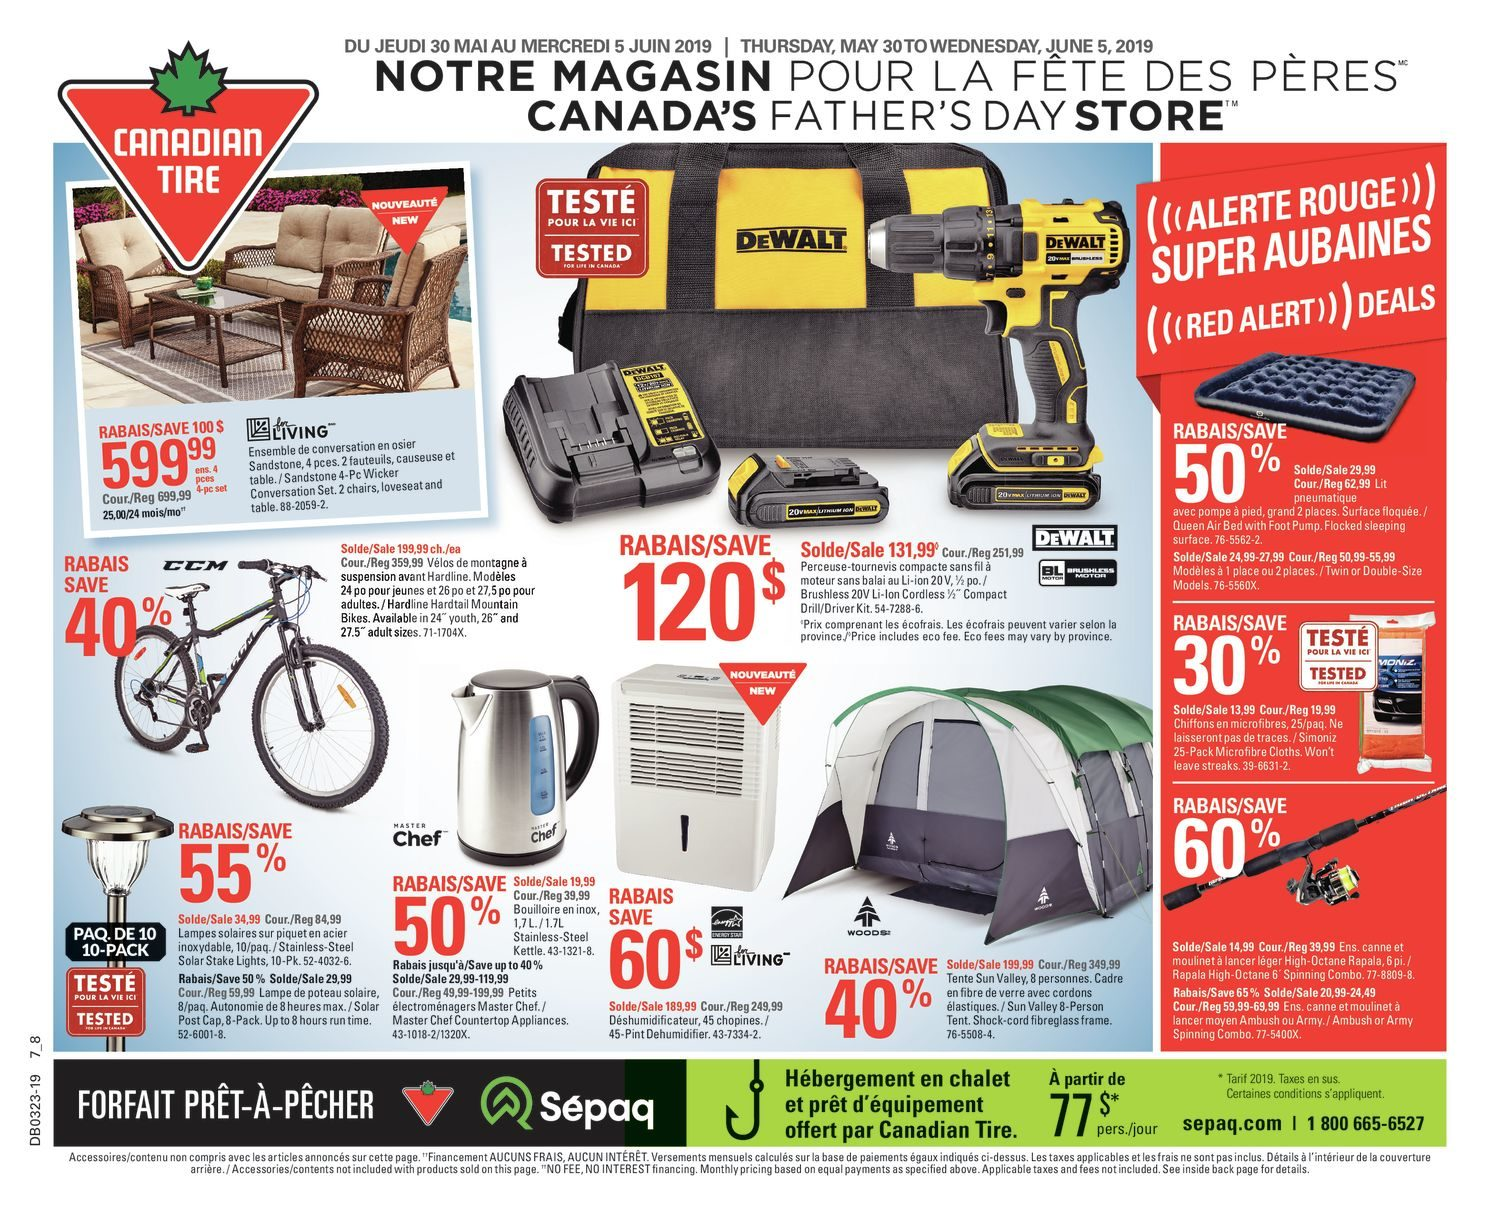 Canadian Tire Weekly Flyer Weekly Canada S Father S Day Store May 30 Jun 5 Redflagdeals Com